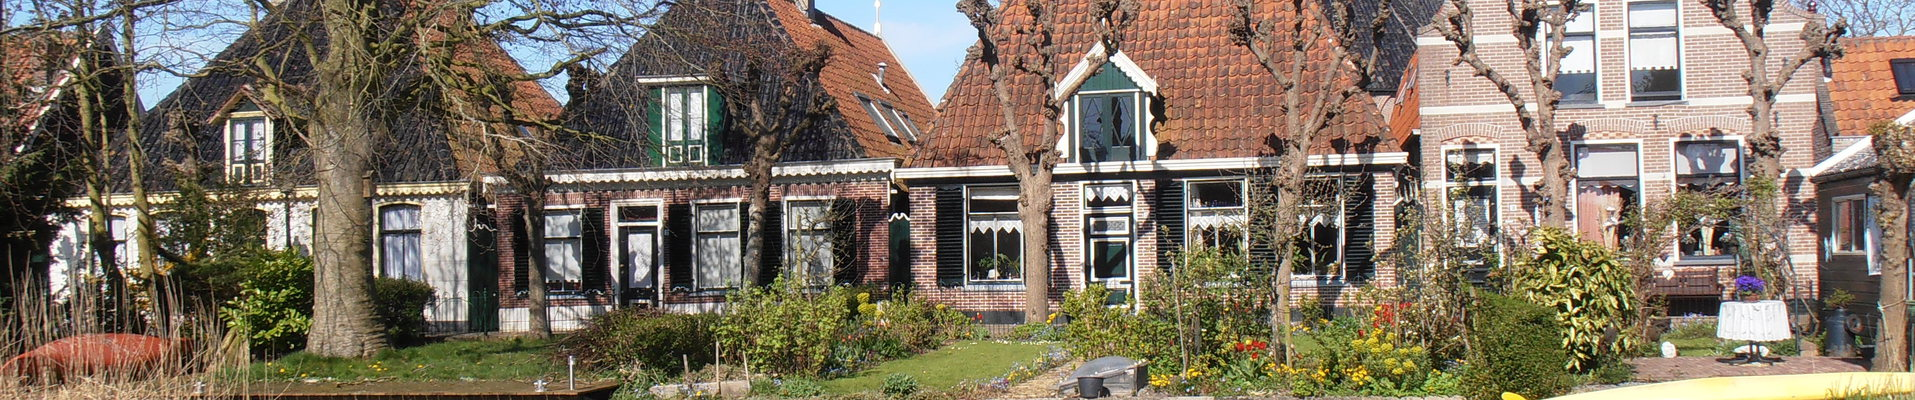 Noord-Hollandpad